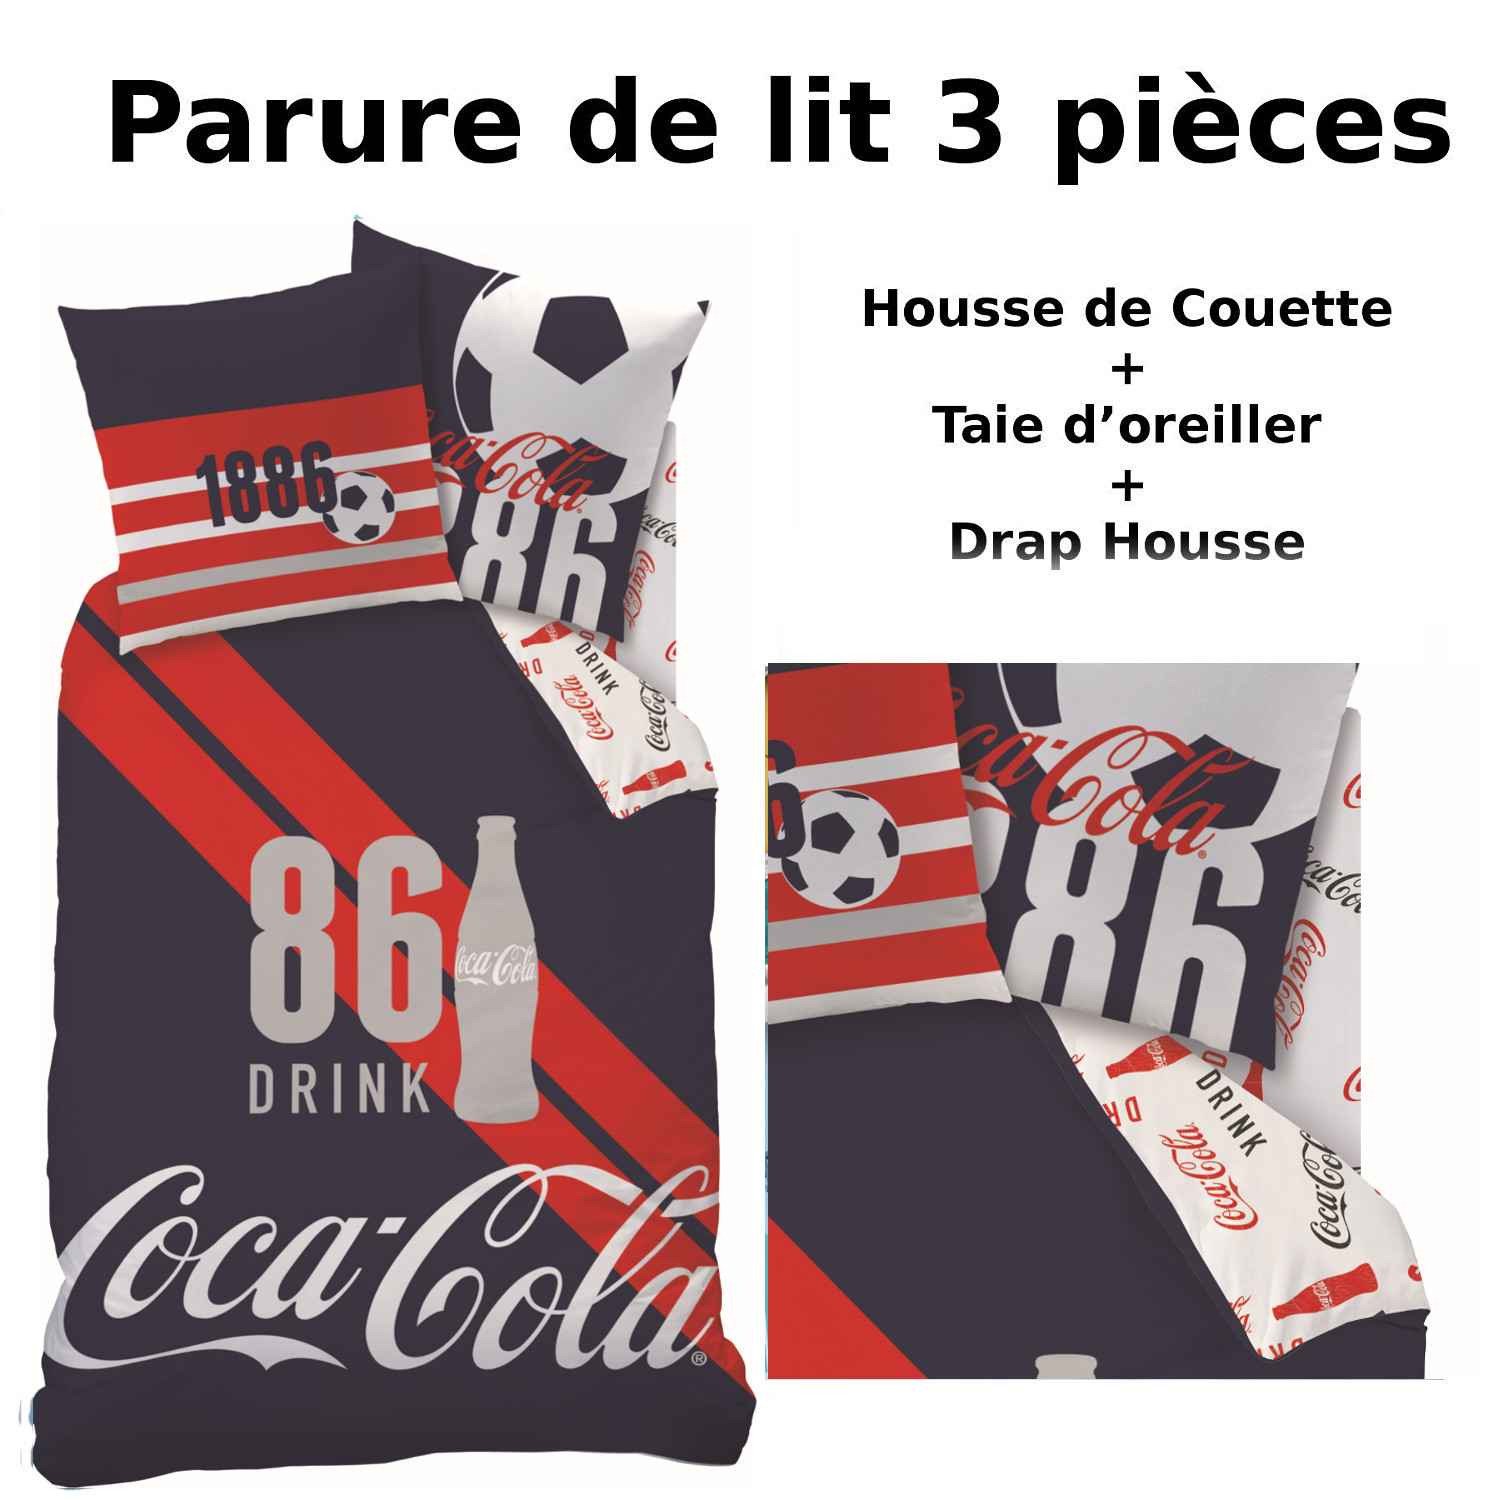 coca cola parure de lit 3pcs housse de couette. Black Bedroom Furniture Sets. Home Design Ideas